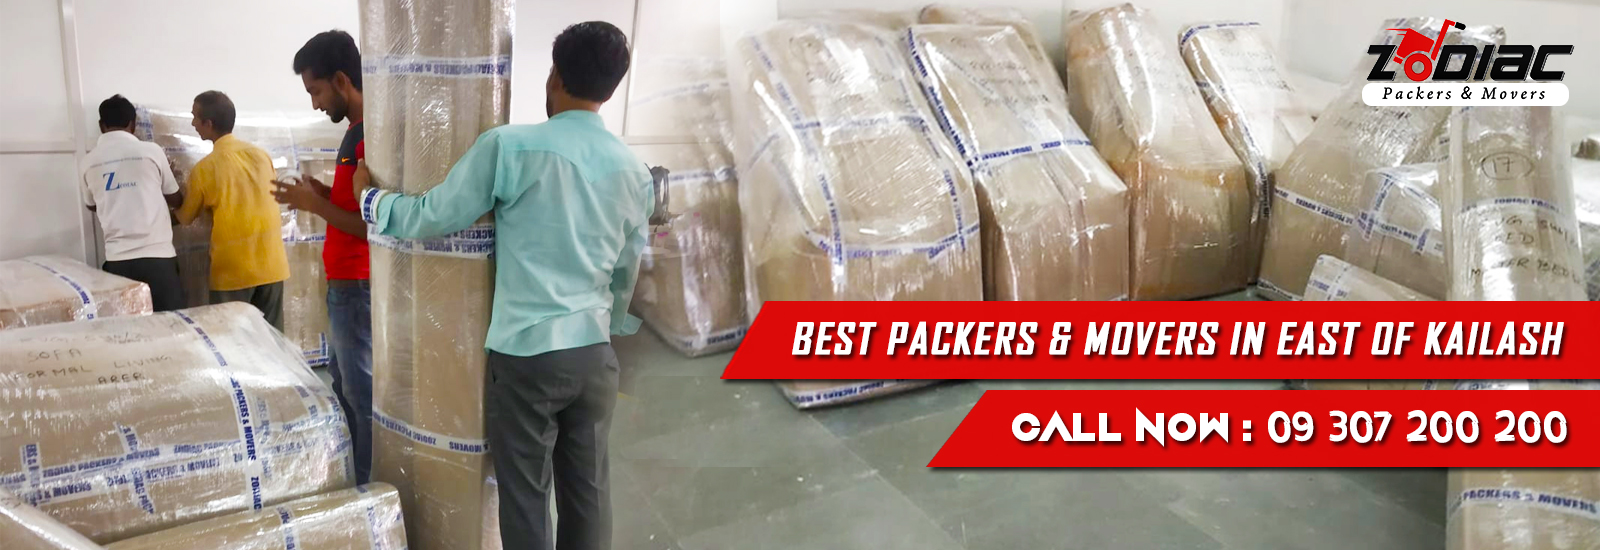 Packers and Movers in East Of Kailash